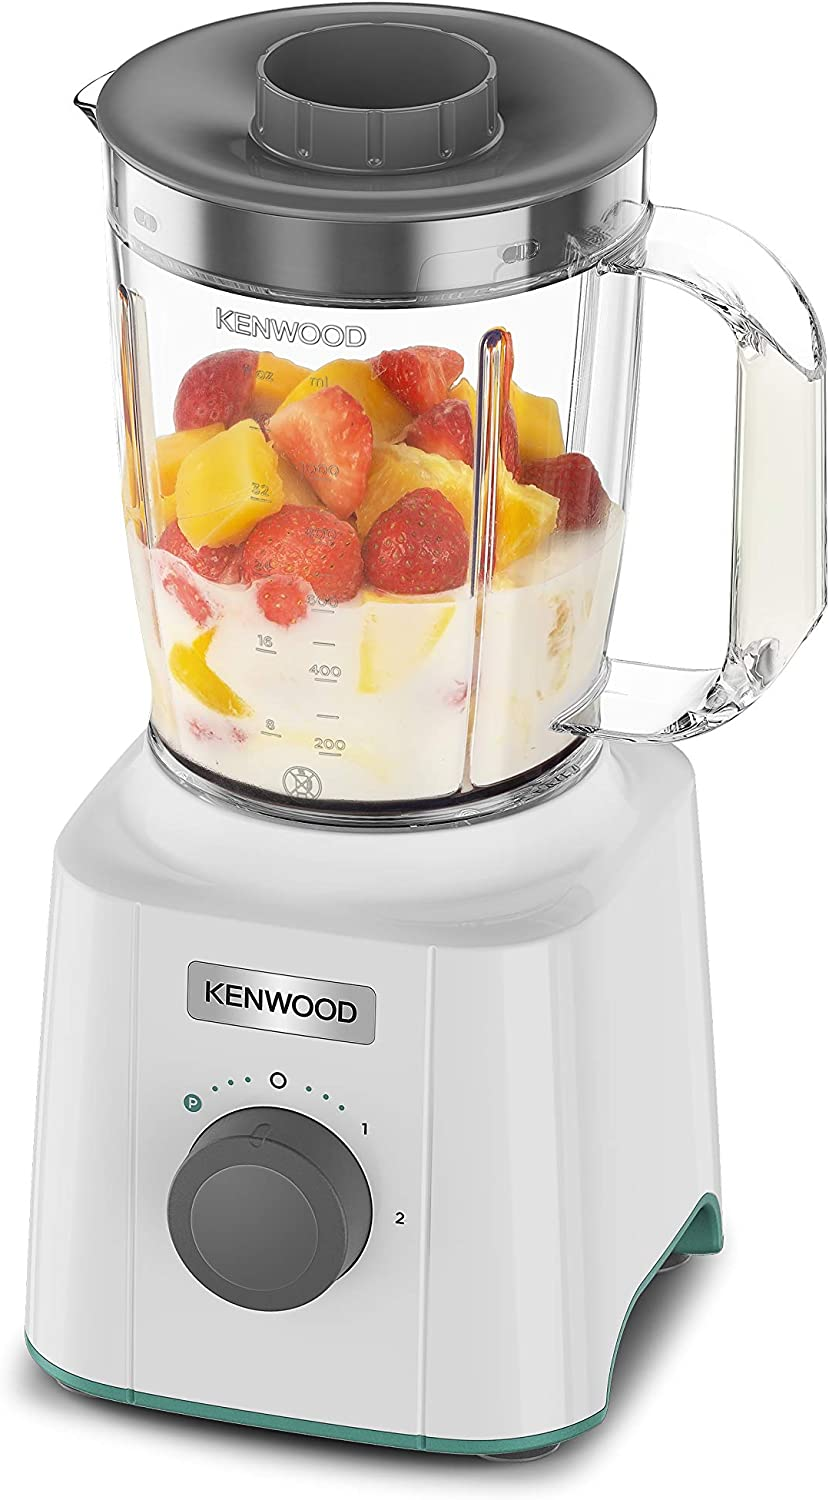 Kenwood Blend-Xtract 3-in-1, Spice Mill, 0,4L Smoothie Blender Attachment, 350w, 2 Speed, BLP31.D0WG, Plastic, White Blp31.aoct (White)